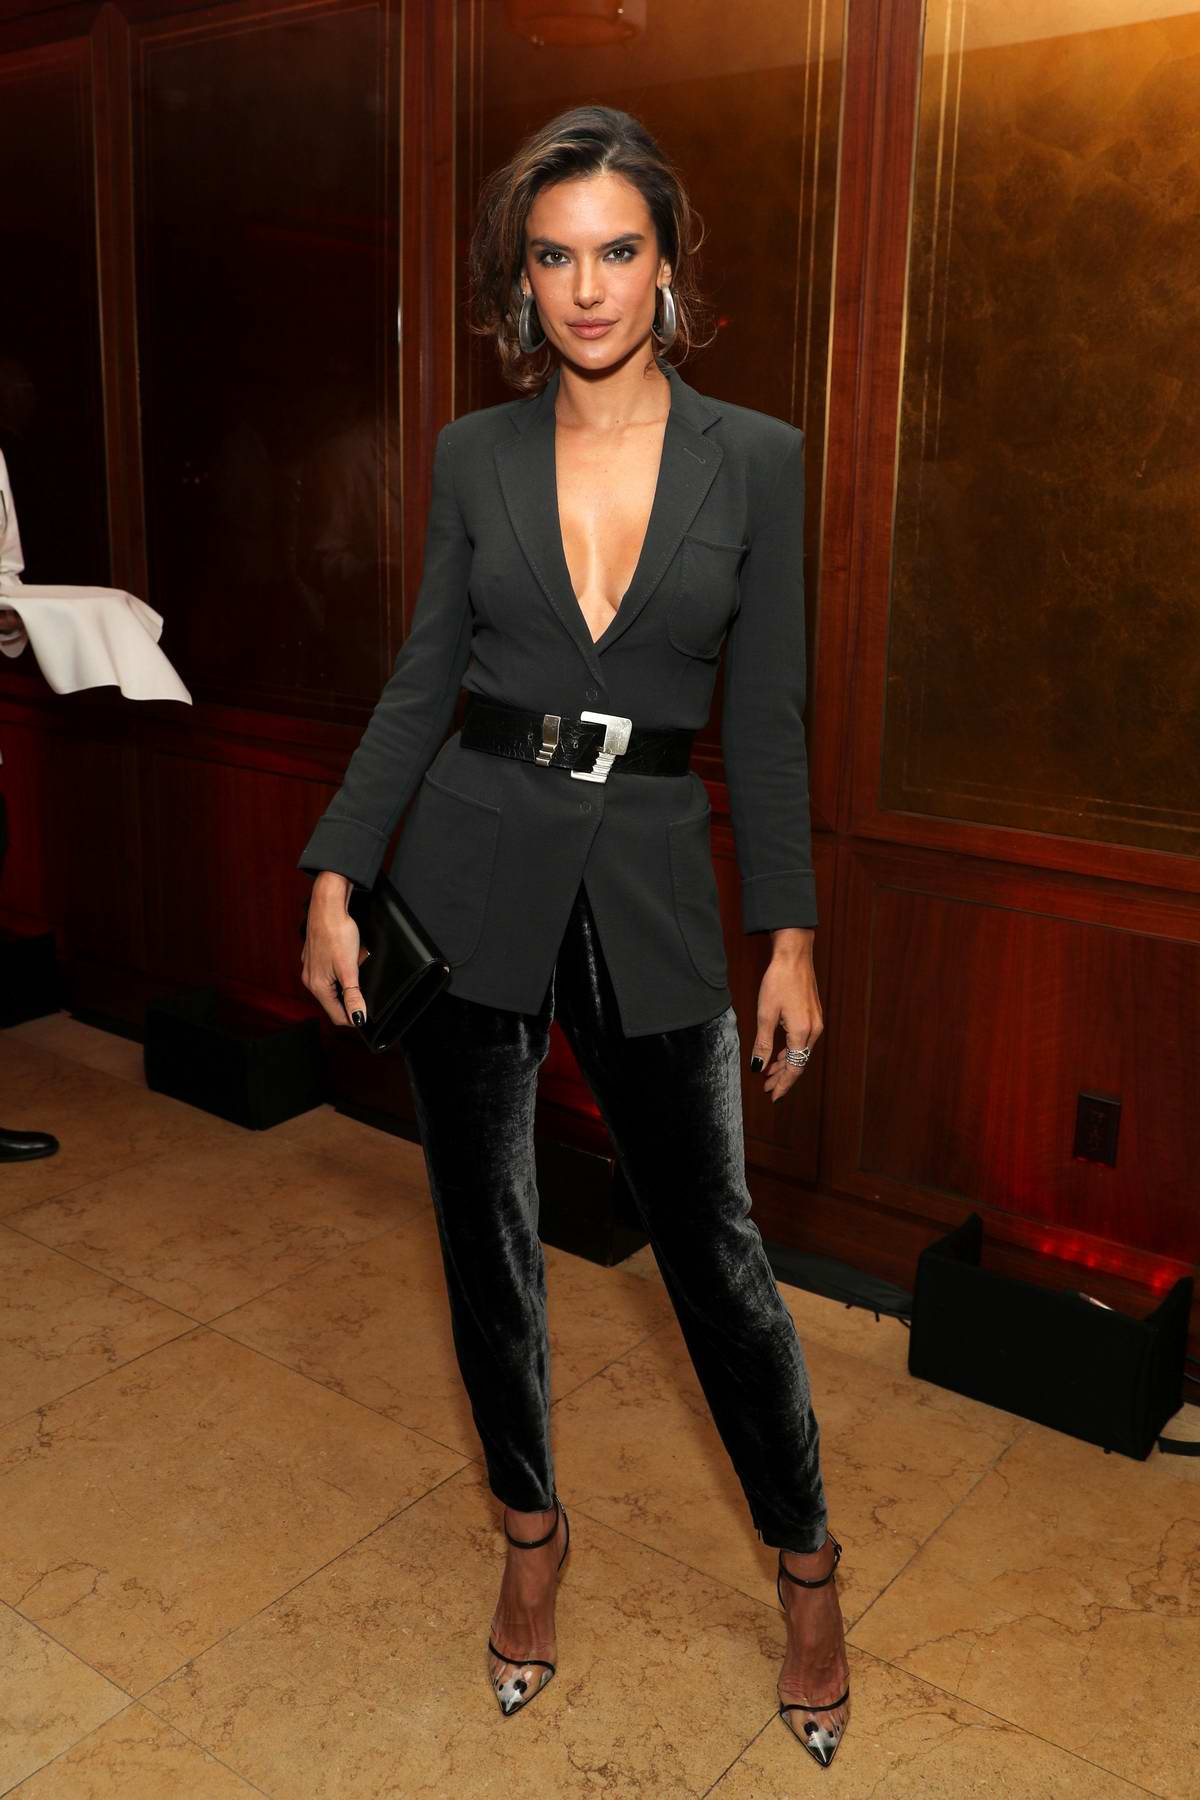 Alessandra Ambrosio attends the Variety x Armani Makeup Artistry Dinner at Sunset Tower in Los Angeles